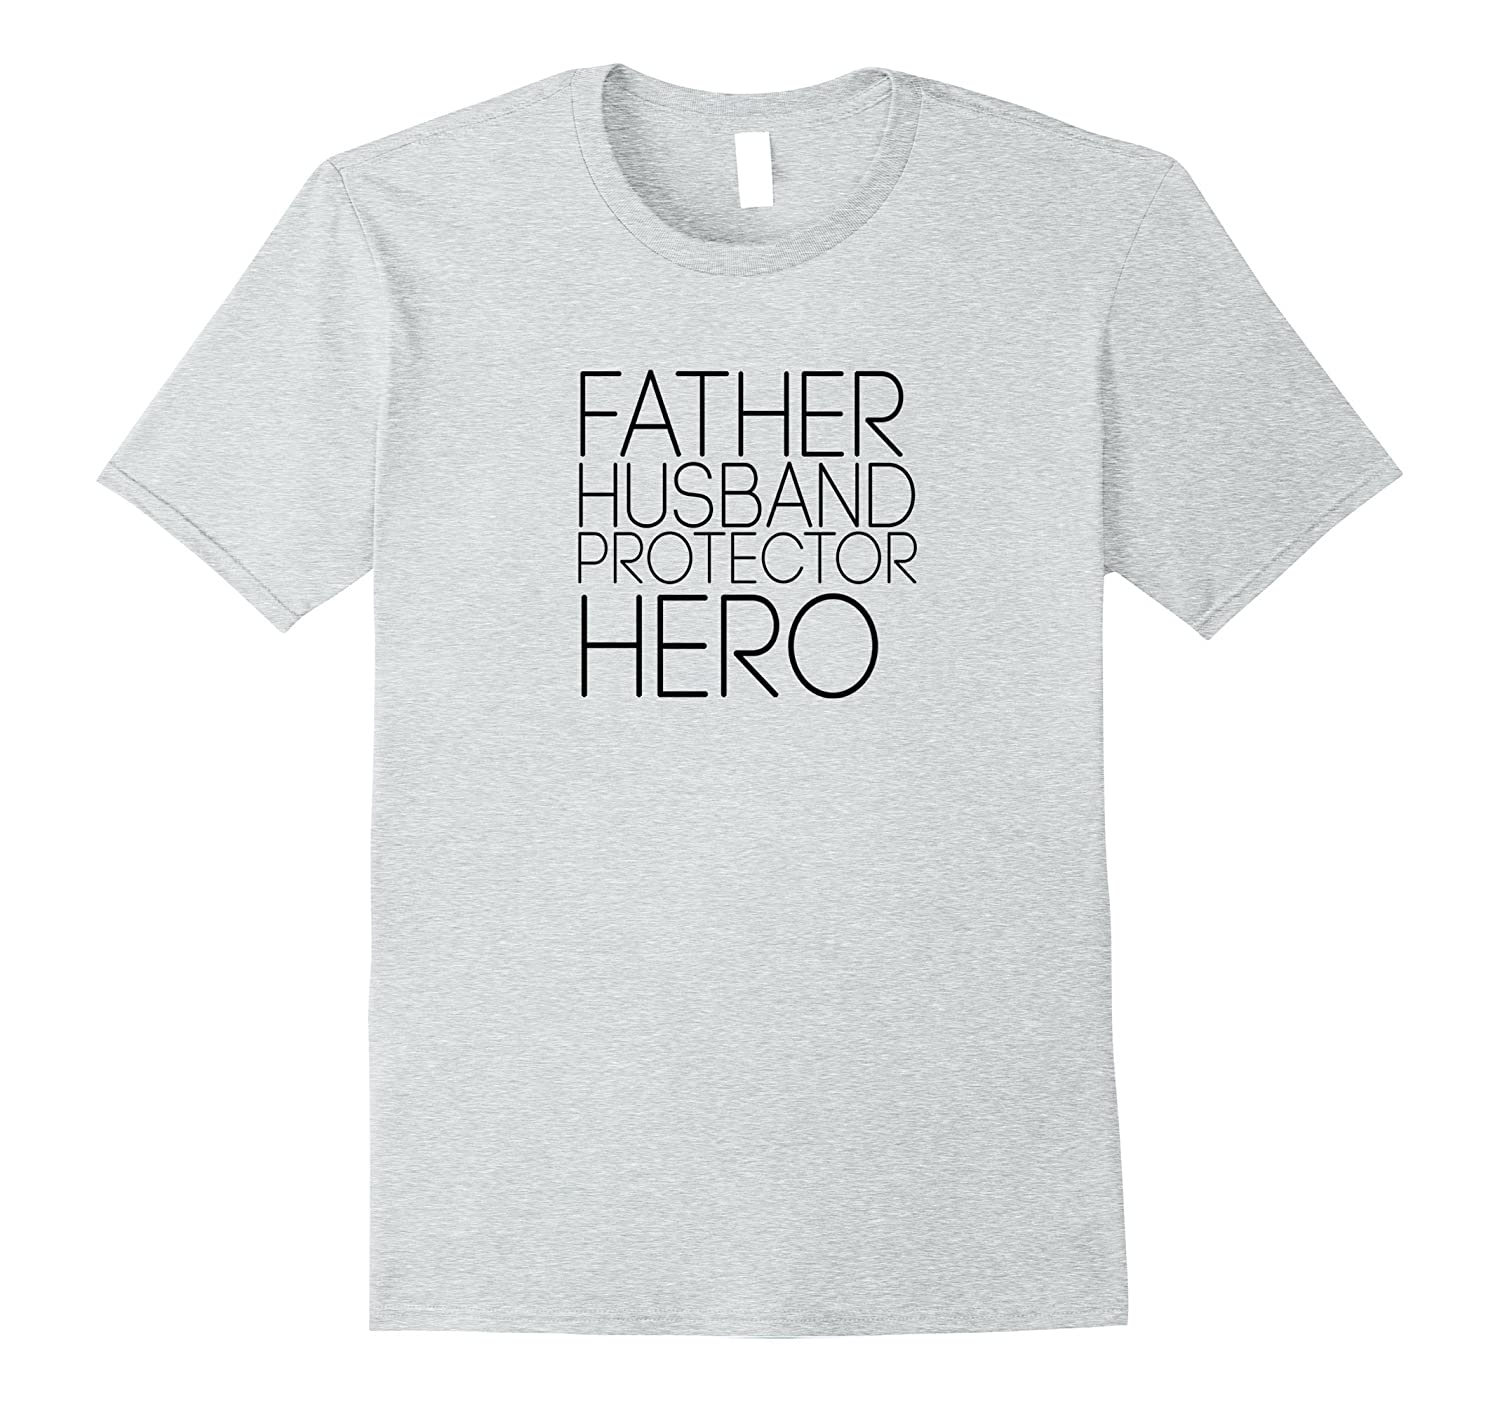 d78a87ab Mens Father Husband Protector Hero T-Shirt Fathers Day Gift-PL ...